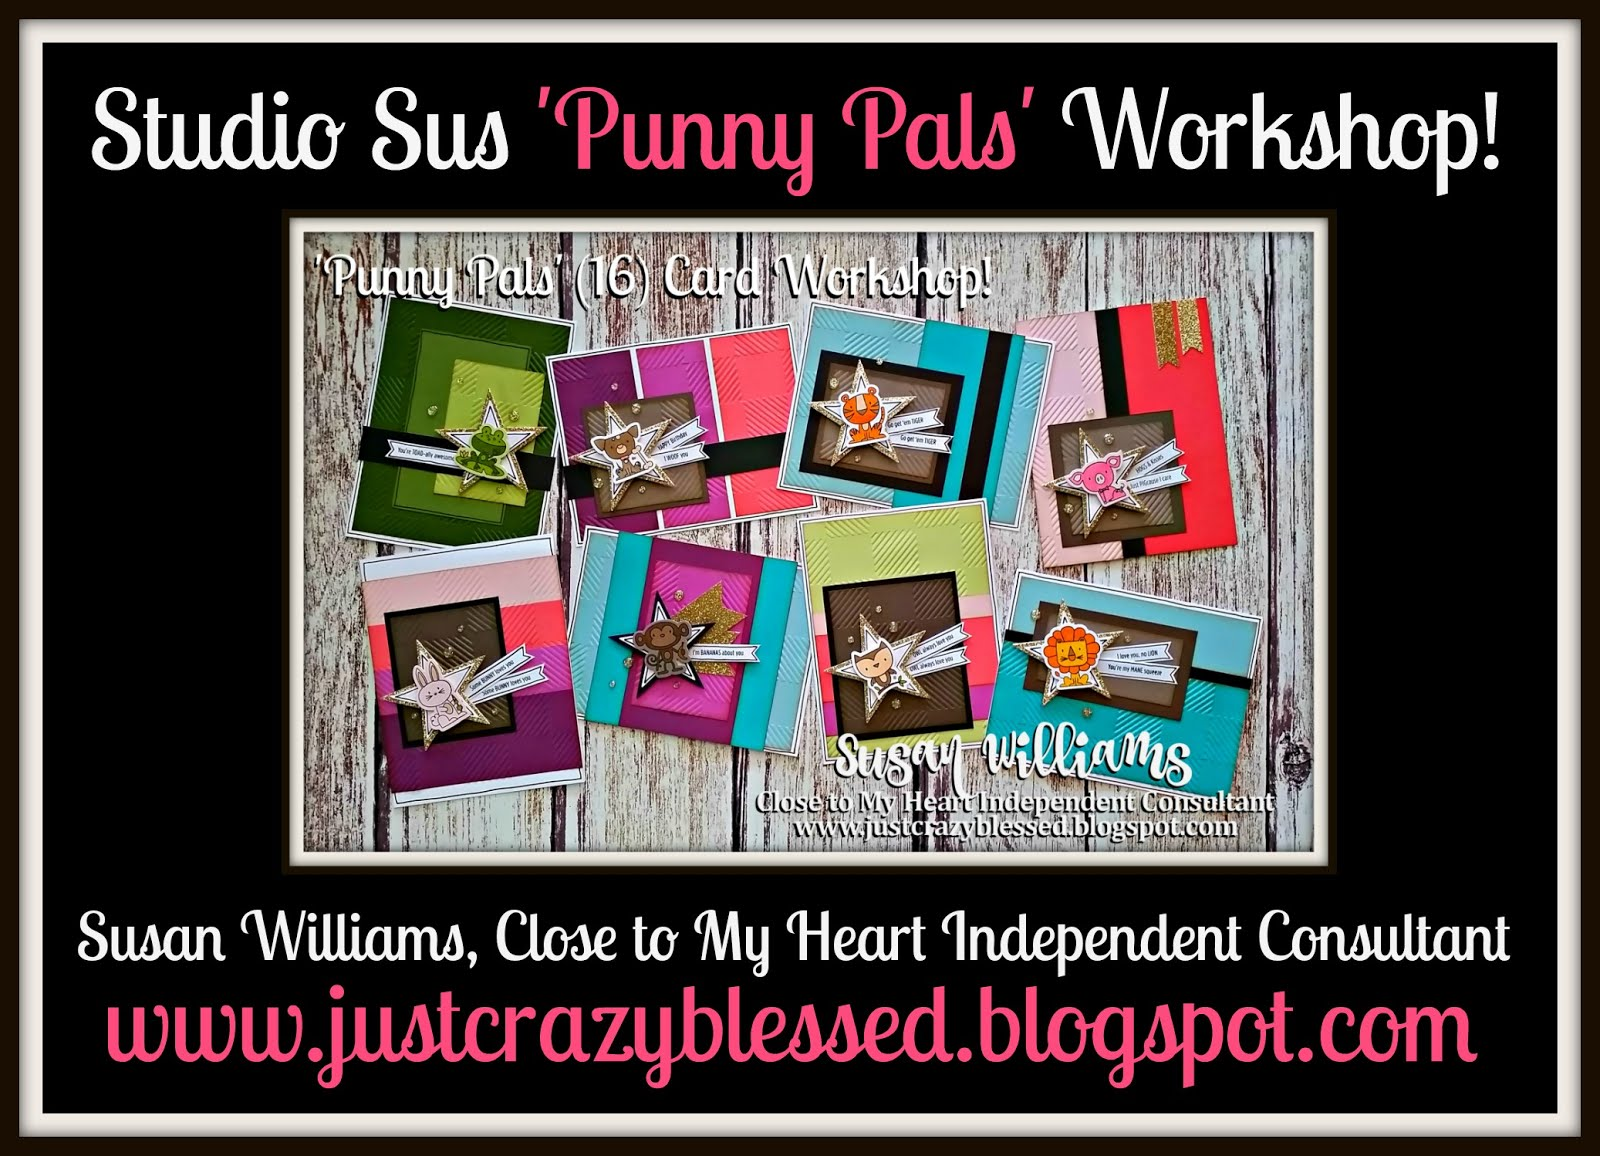 'Punny Pals' Cardmaking Workshop!